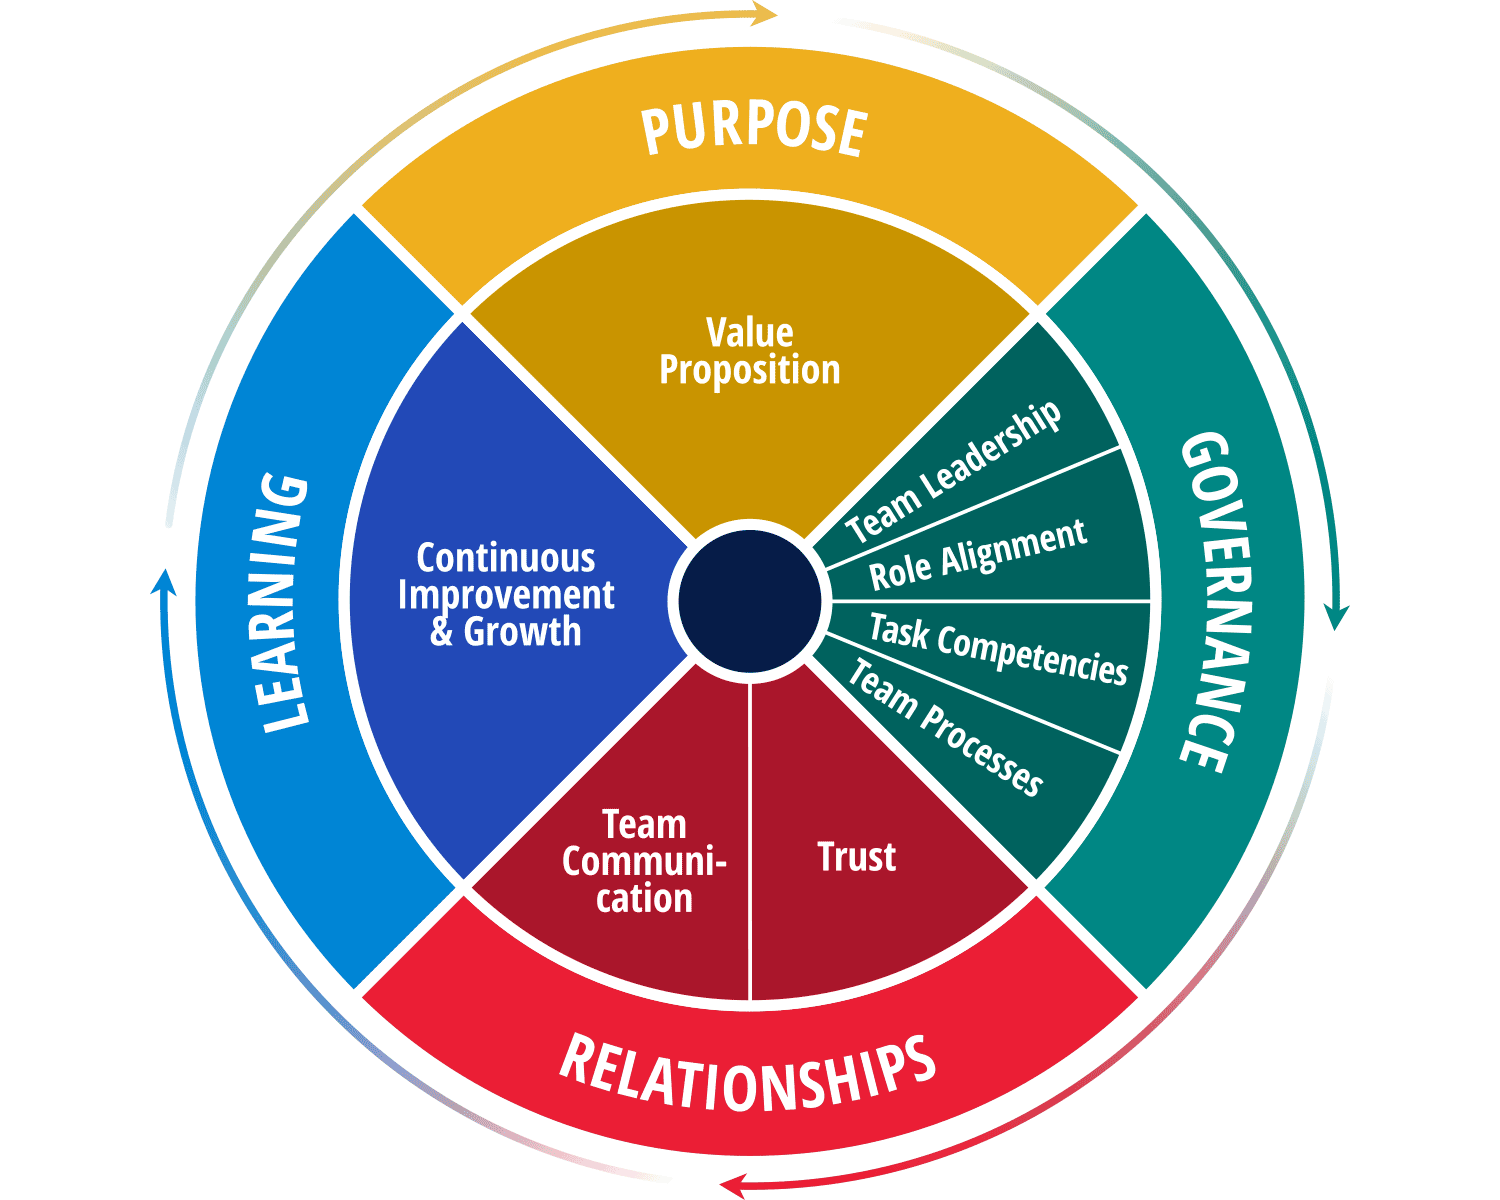 Purpose, governance, relationships, and learning.